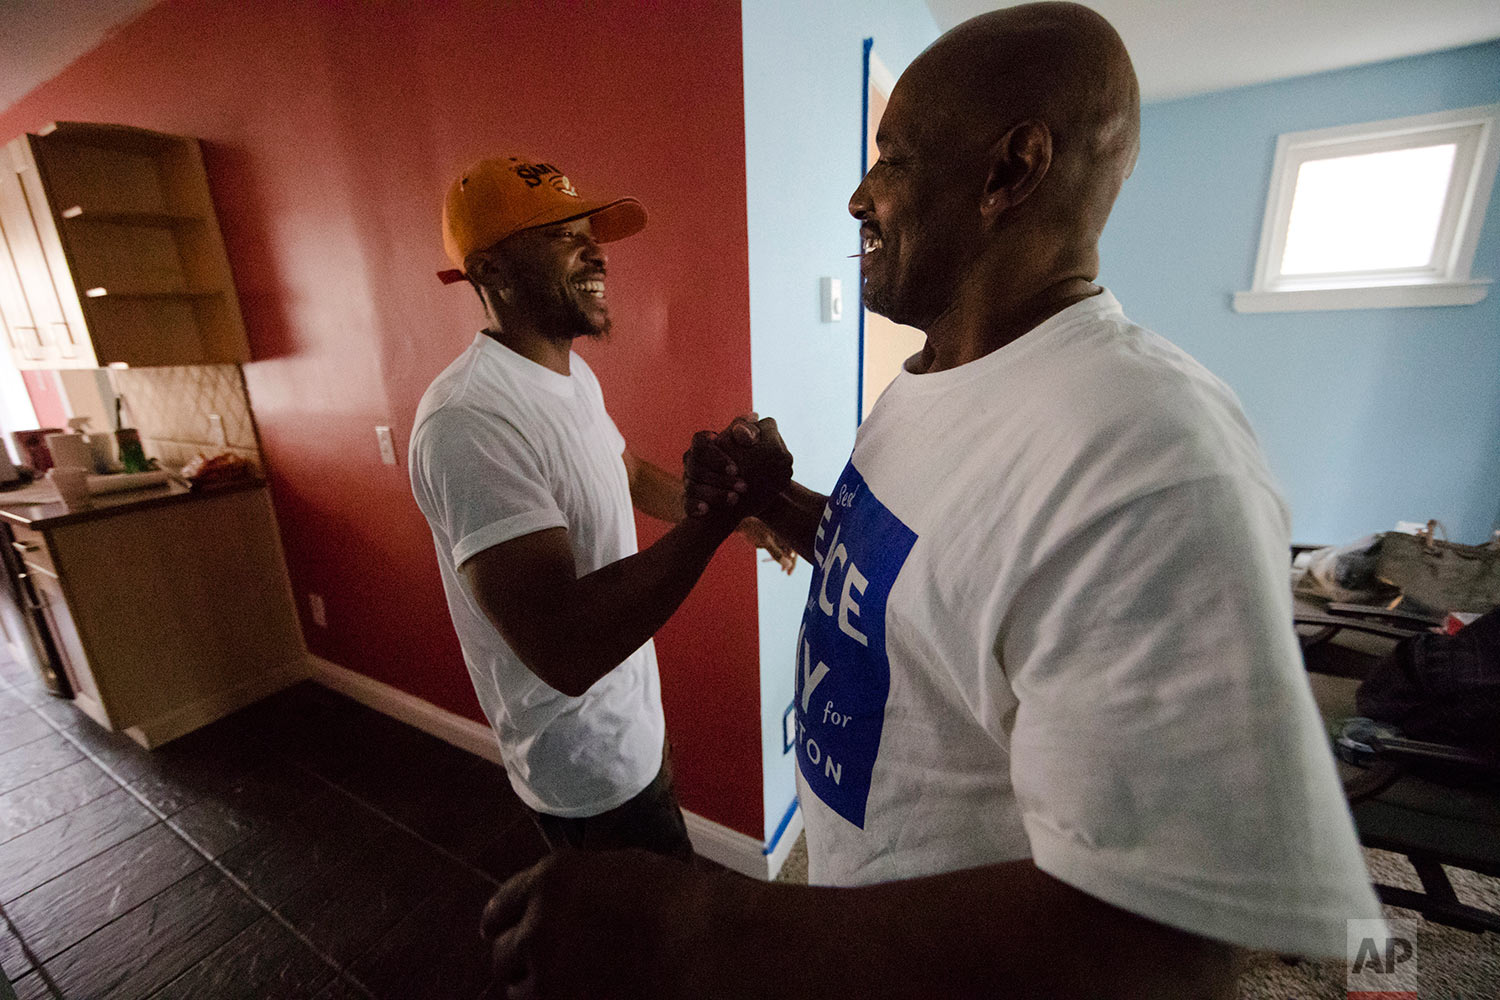 Earl Rice Jr., right, greets Justin Coleman as he arrives to help family members paint a newly-bought home in Wilmington, Del., Saturday, May 20, 2017. (AP Photo/Matt Rourke)